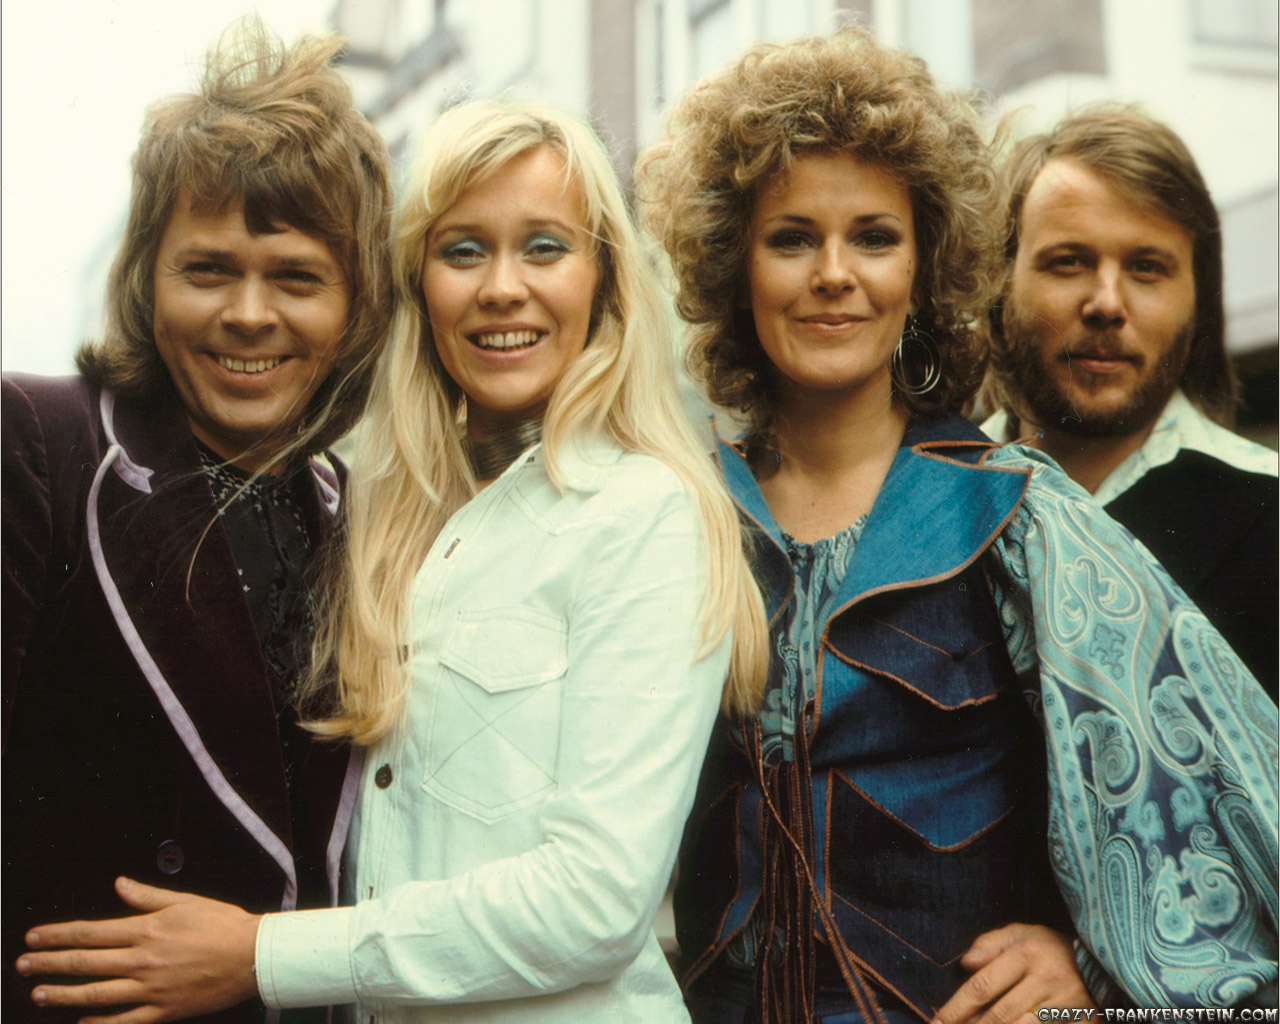 Abba Band Abba Pop Culture Icons